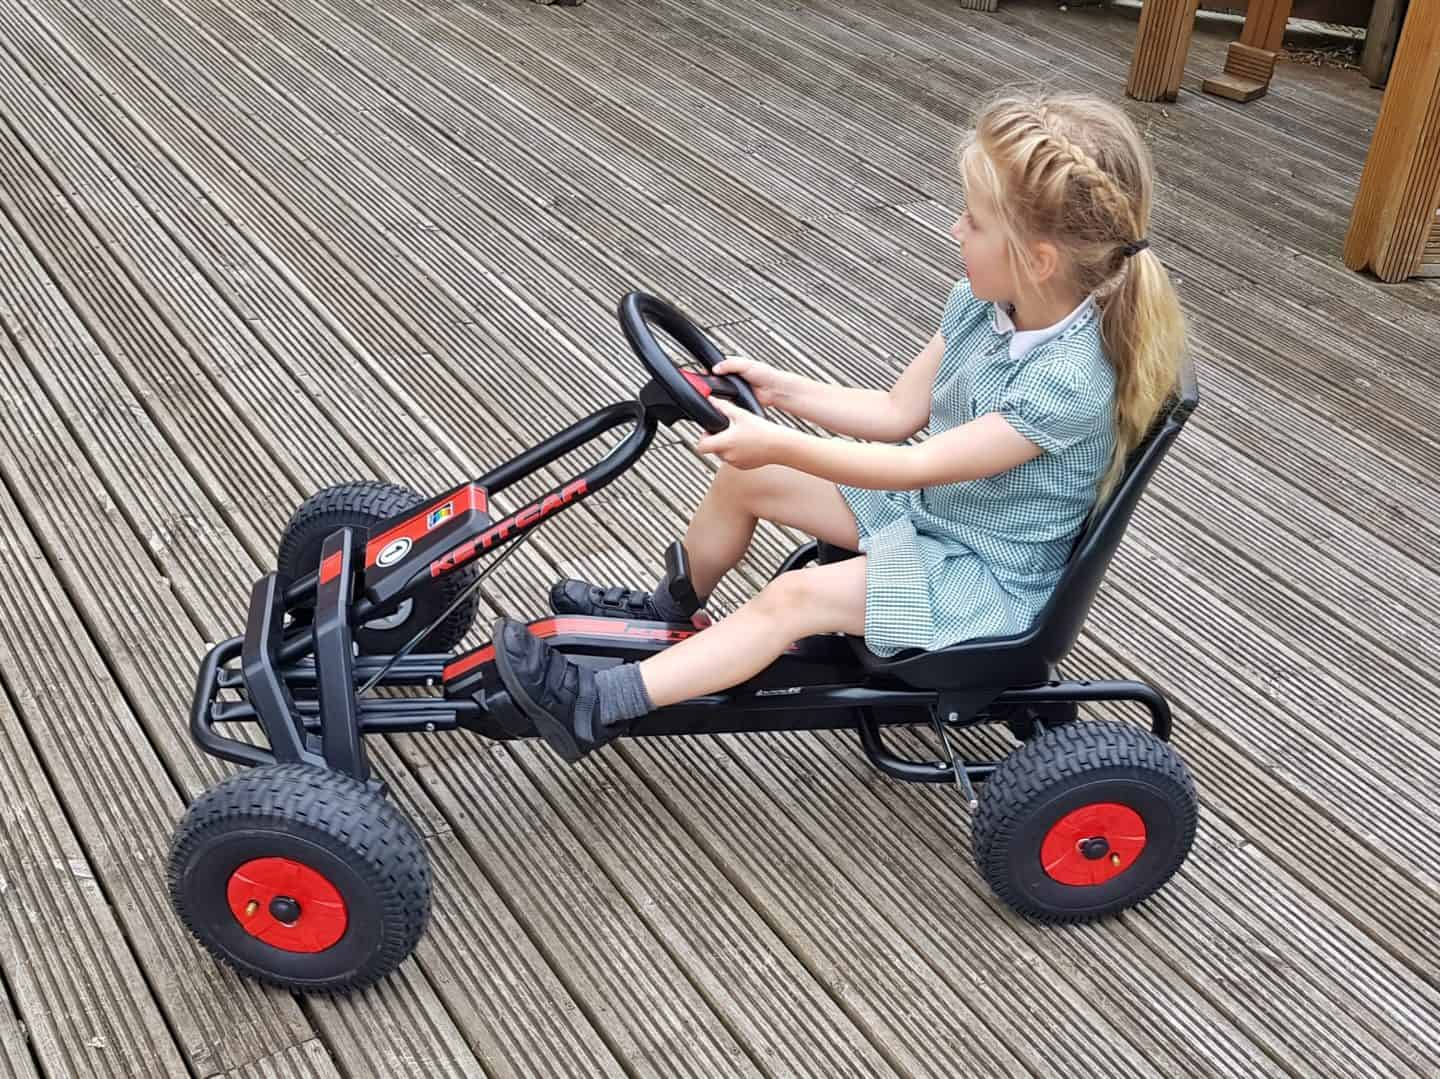 Girl riding Kettler Barcelona Air Go Kart side view on decking